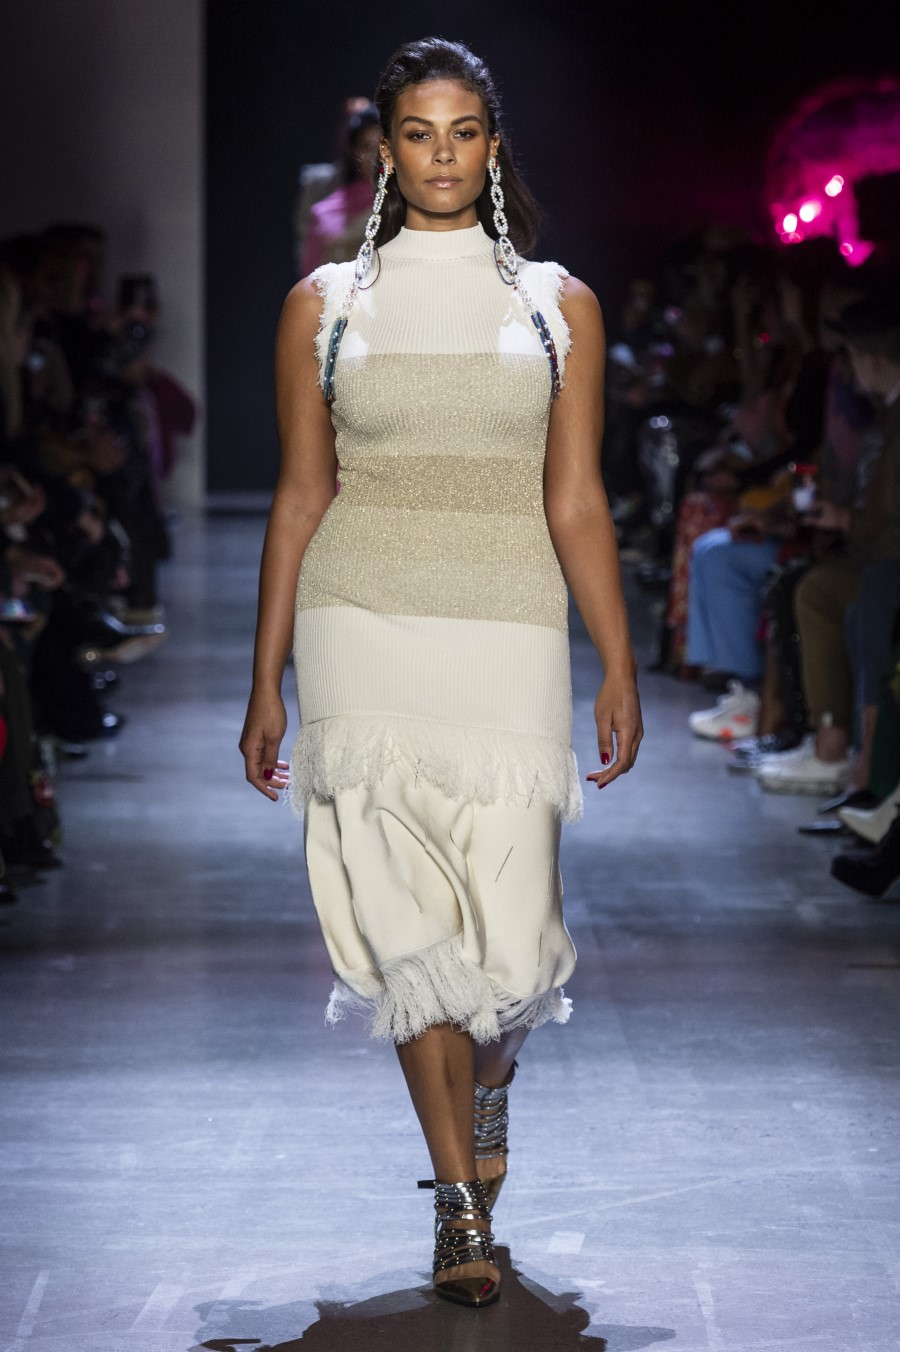 Prabal Gurung Fall Winter 2019 - New York Fashion Week